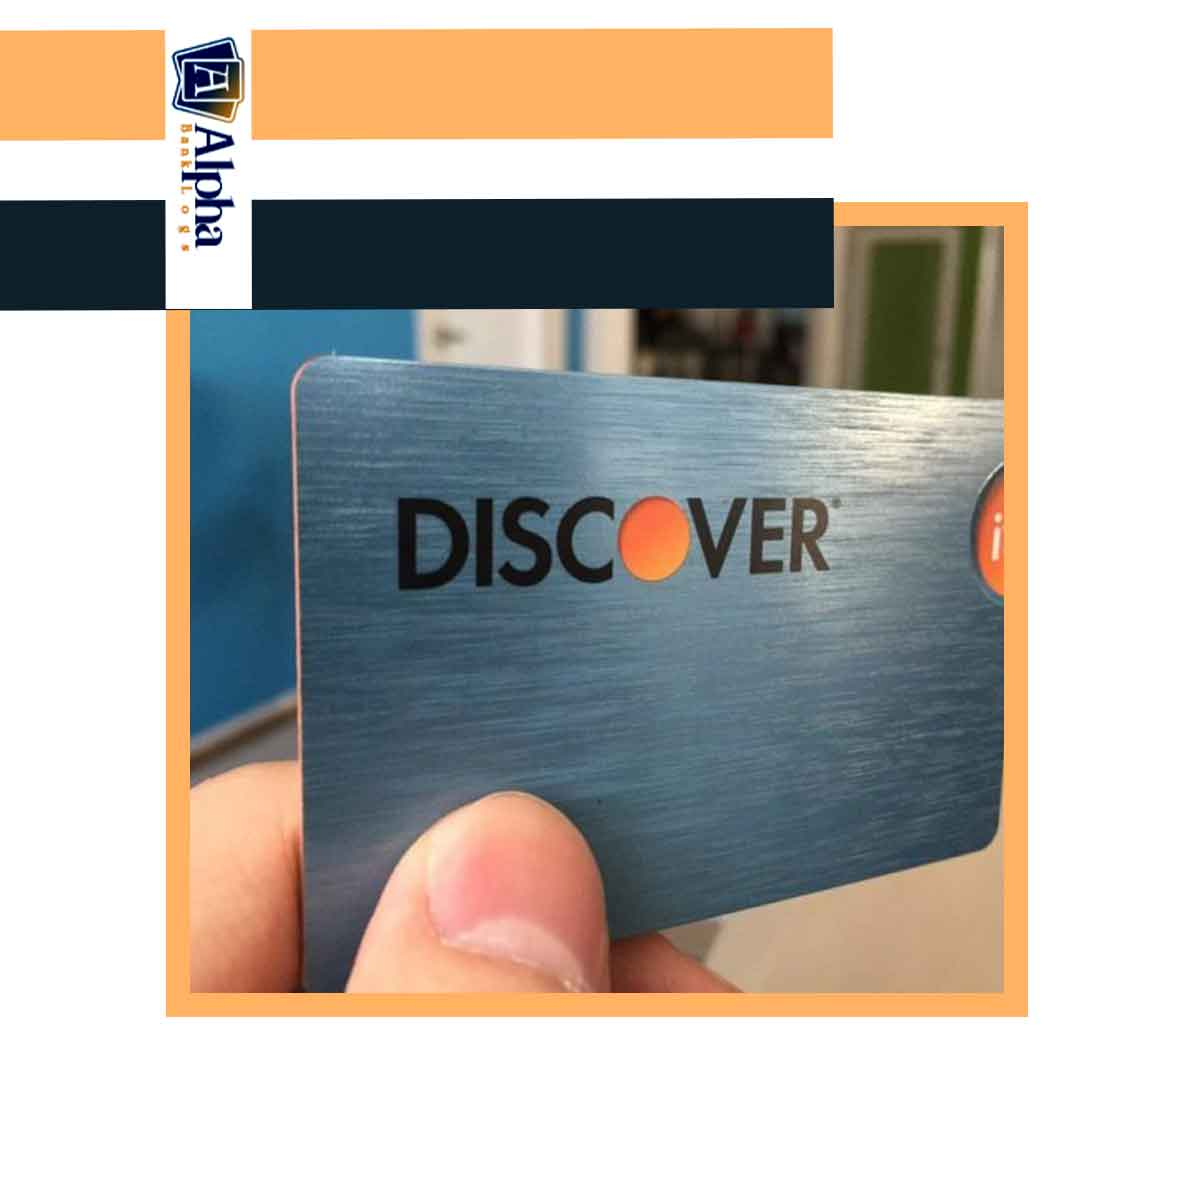 Discover Credit Card Blank (Chip 1Dip)